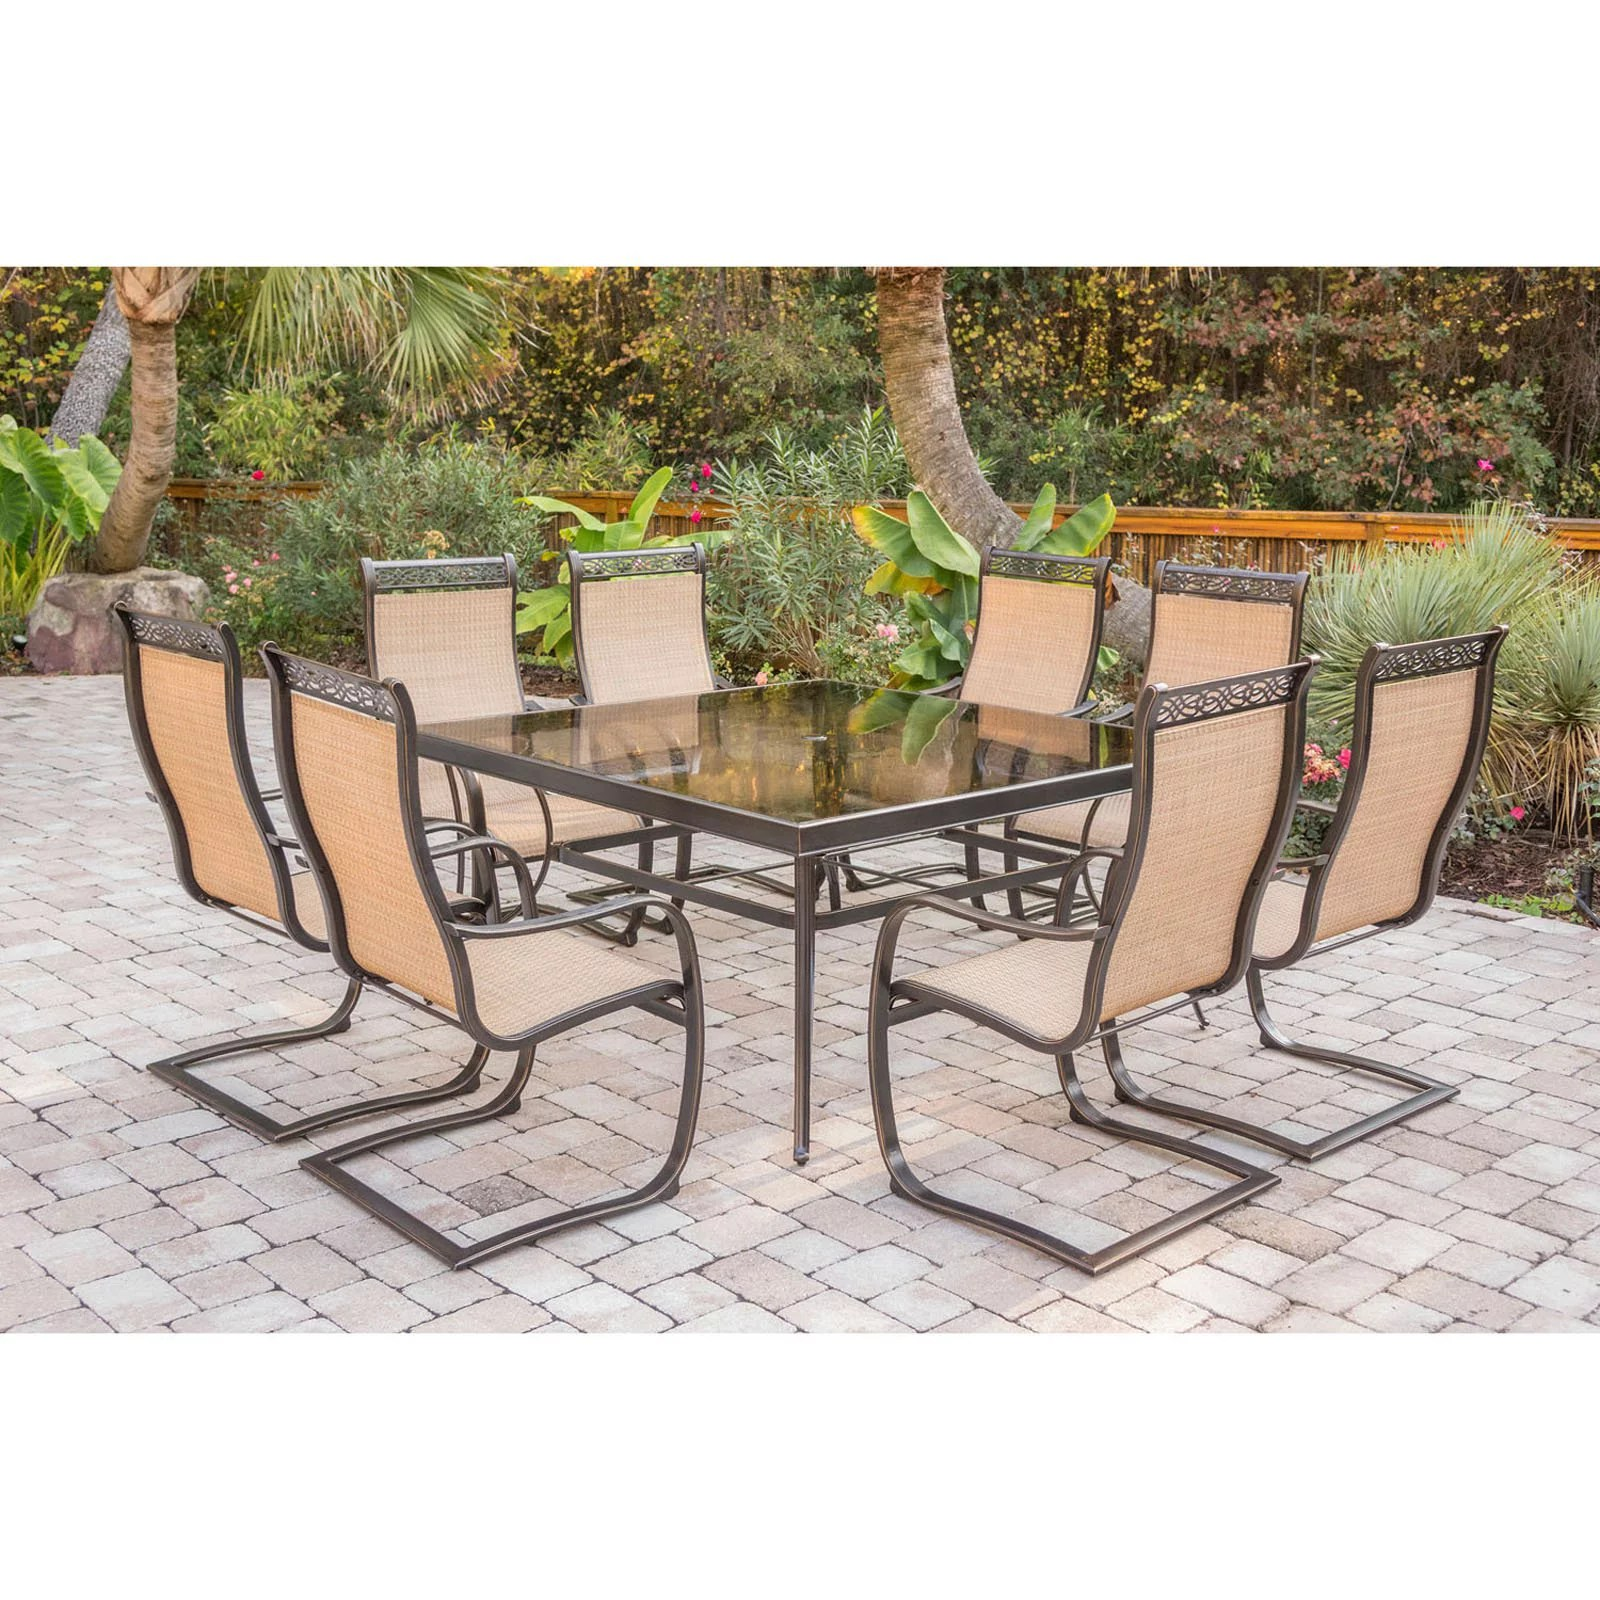 hanover outdoor monaco 9 piece sling dining set with 60 square glass top table and 8 c spring chairs in cedar walmart com